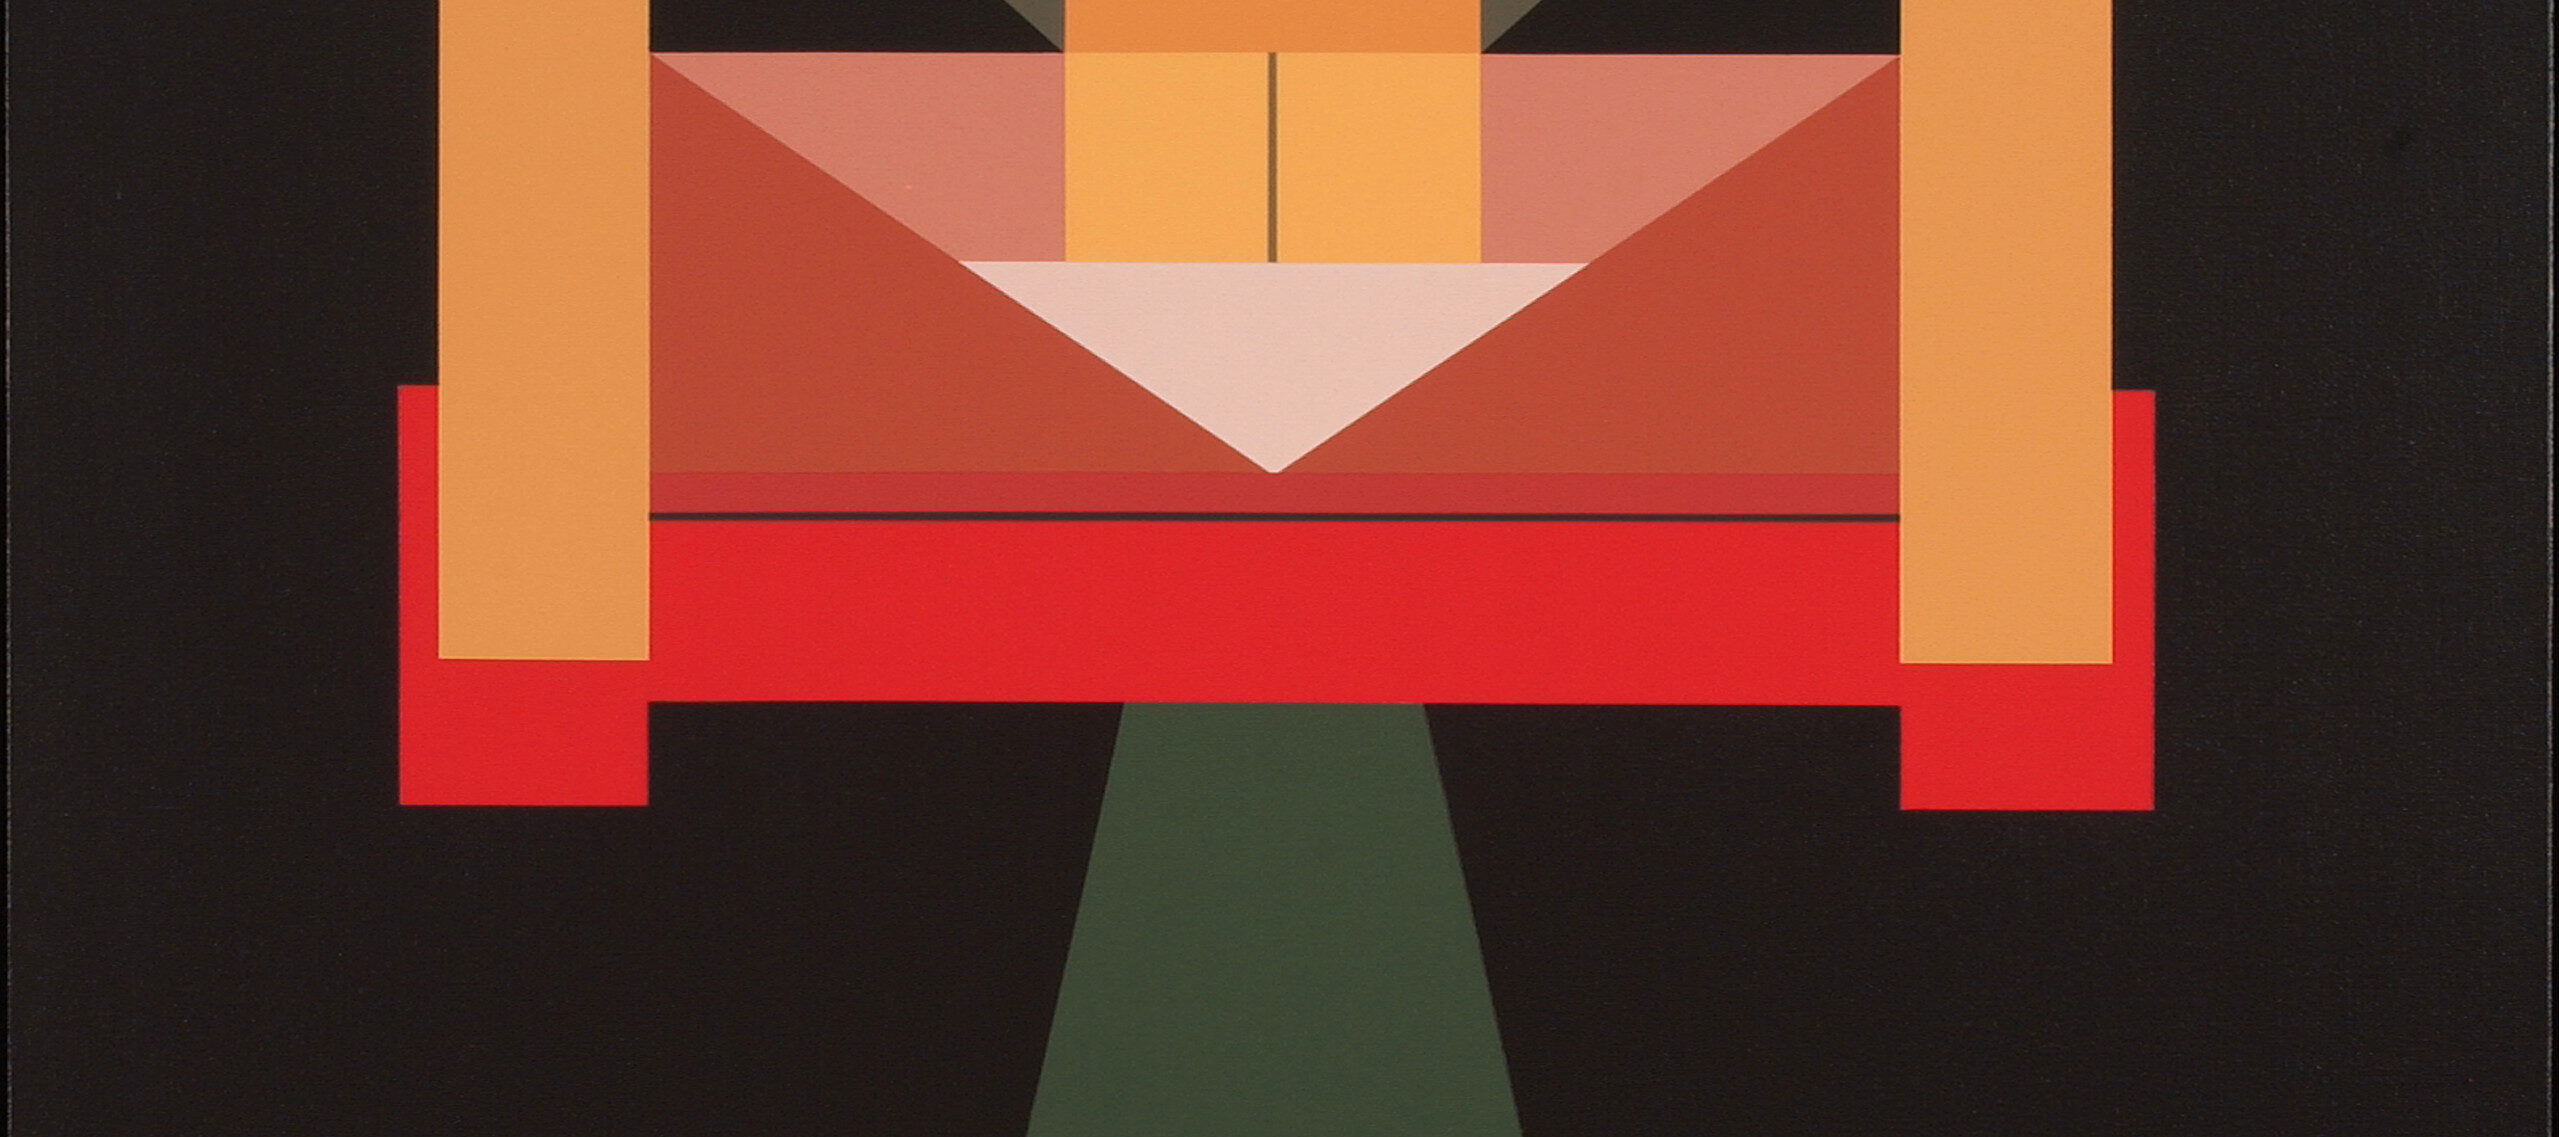 An abstract geometric painting featuring three peach colored rectangular columns atop a plane of dark brown, grey, and teal green. There are also red, pink, and white segments that form triangles, rectangles, and squares.